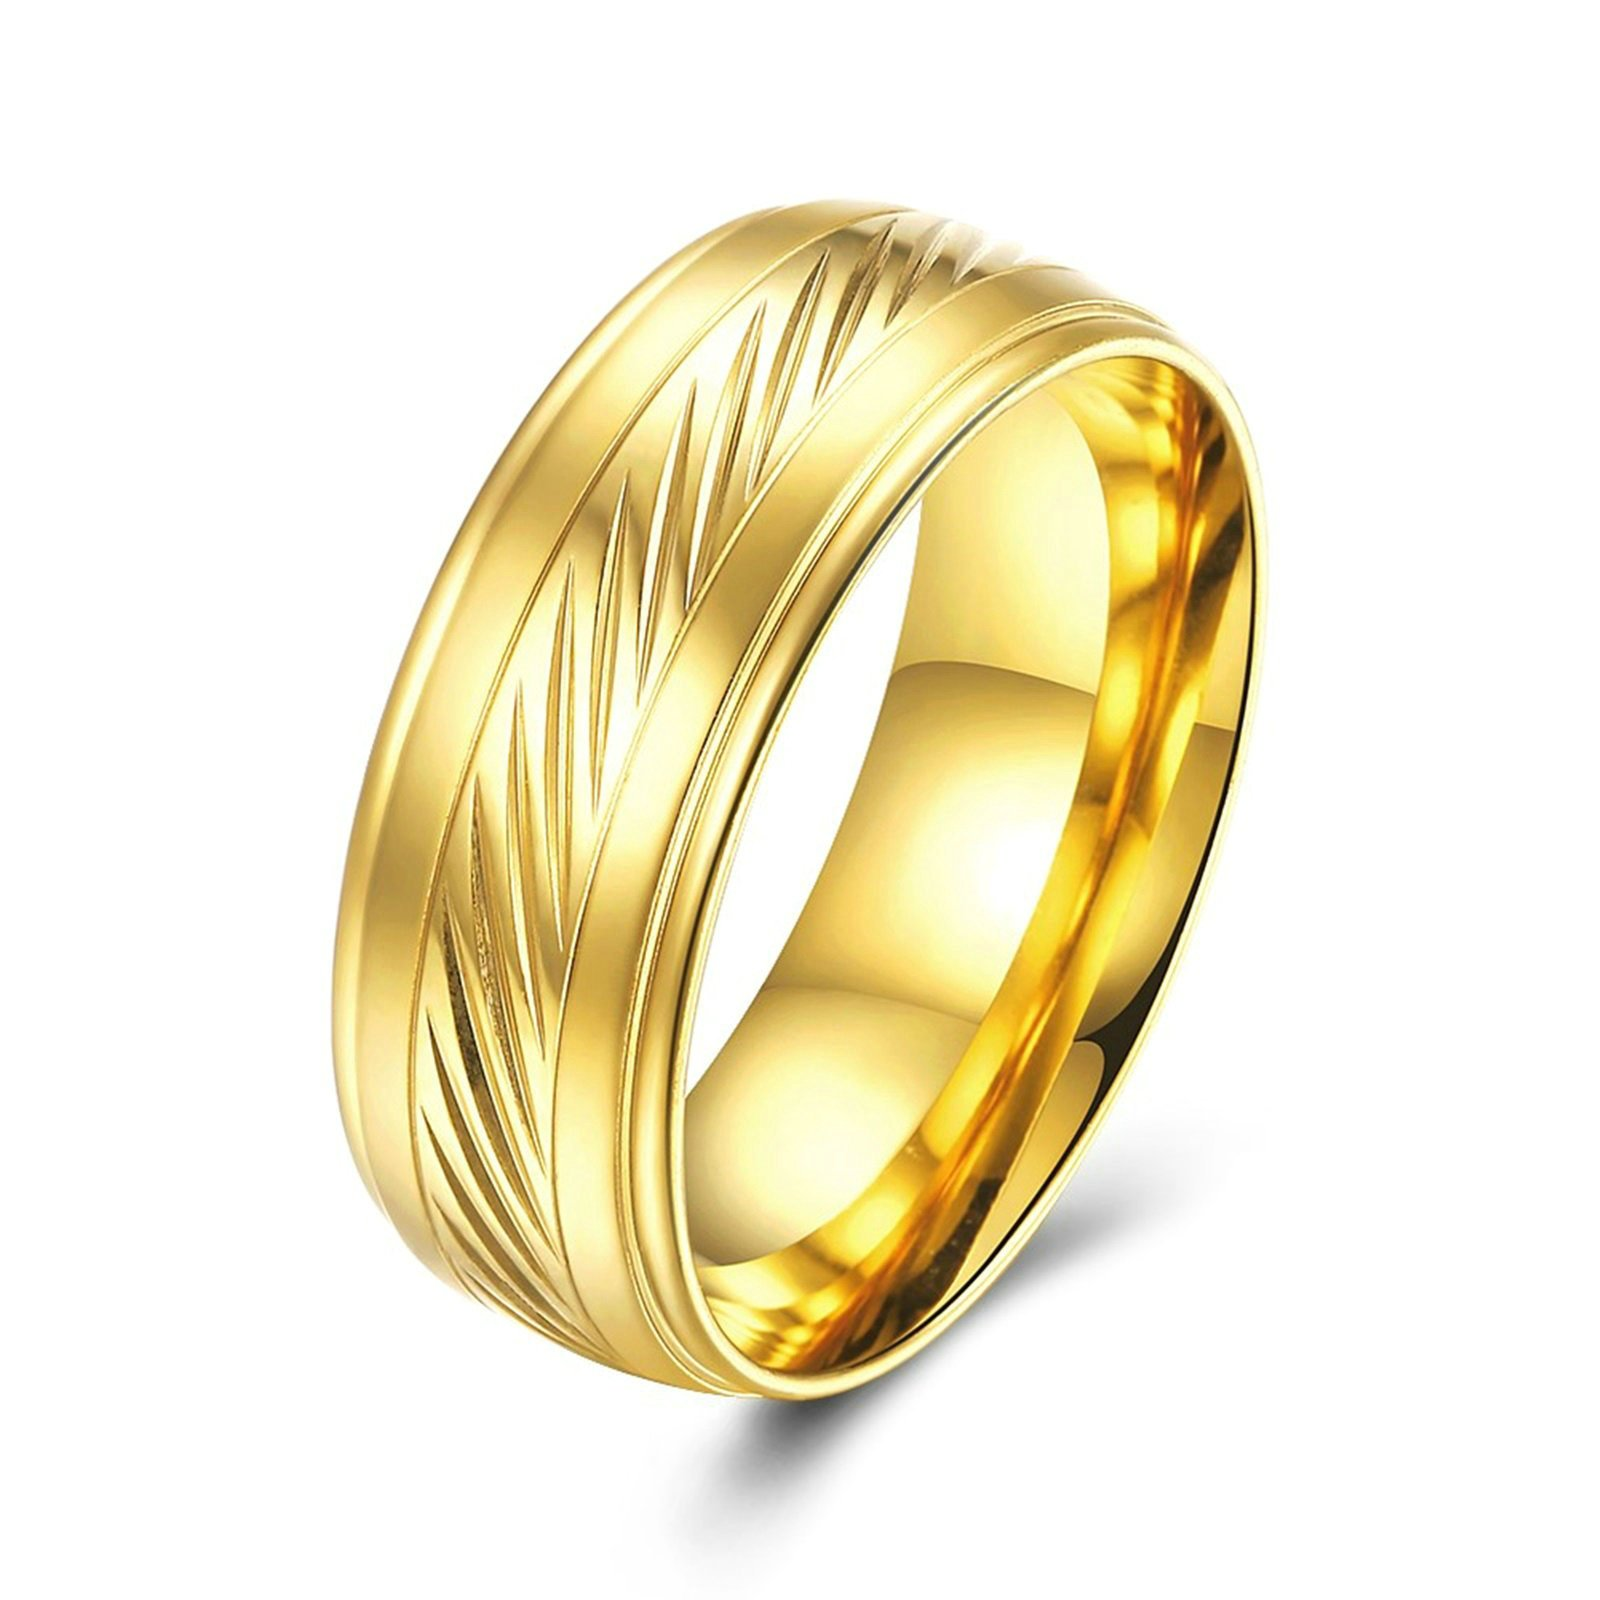 Epinki Gold Plated Men Ring 8Mm Gold Ring Cubic Zirconia Wedding Ring Size 8 Men Accessories